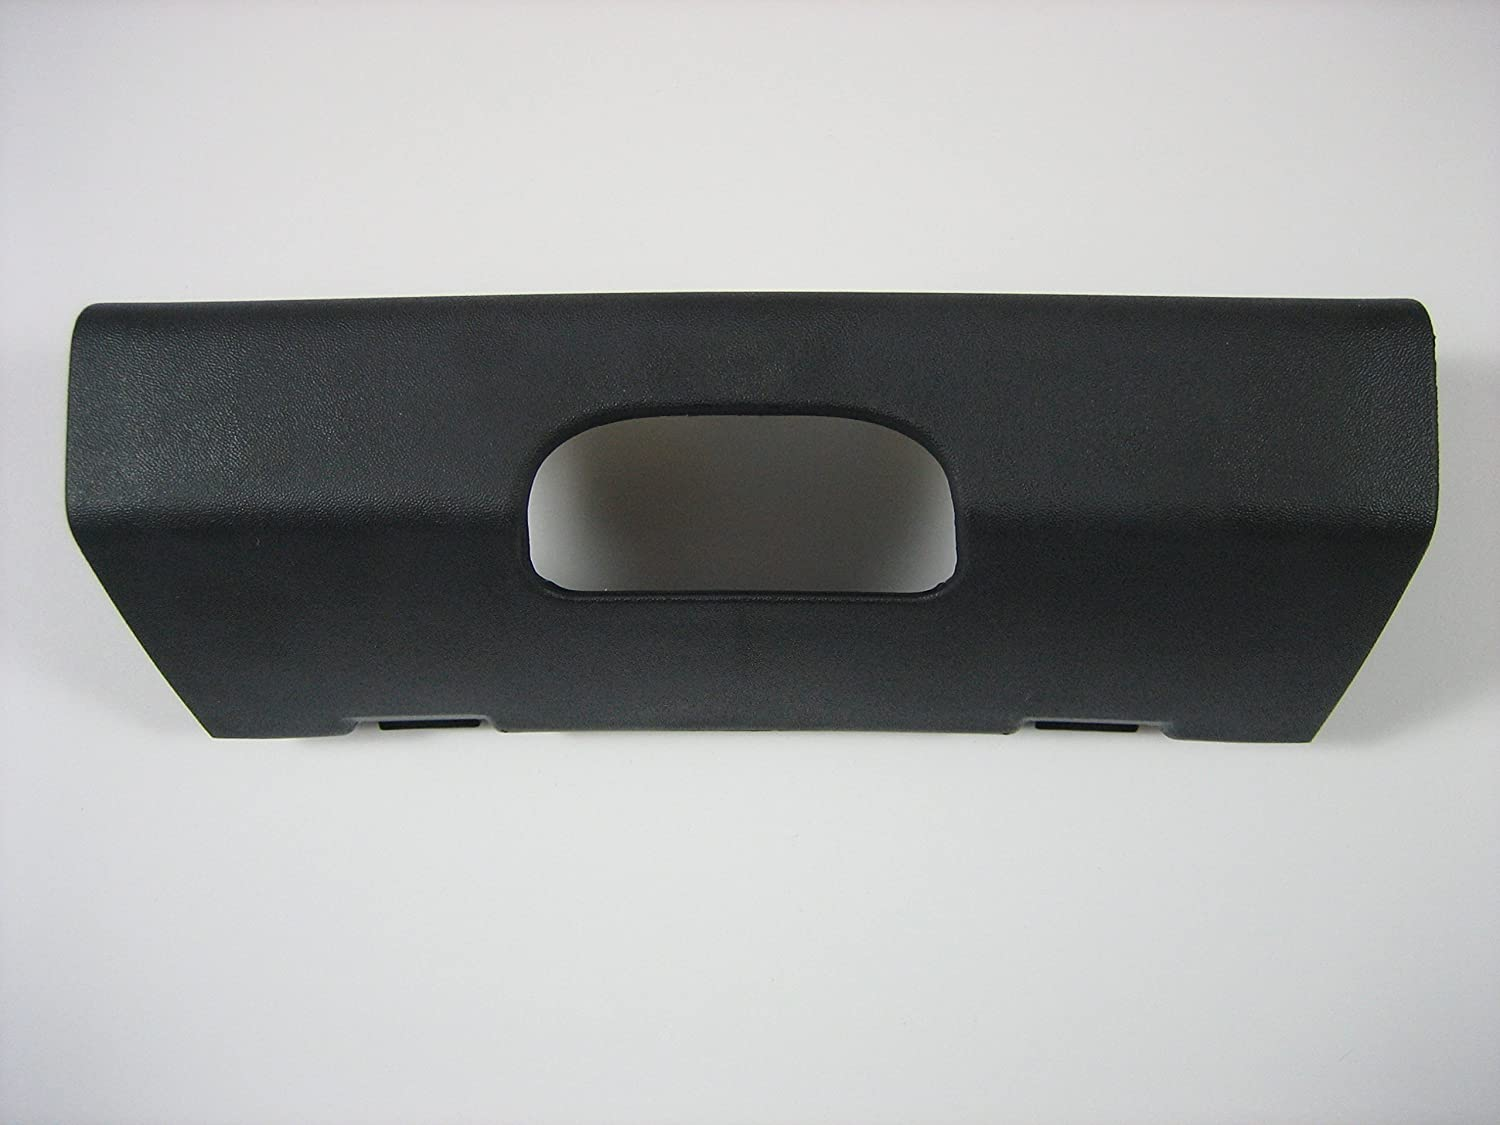 Land Rover New Genuine Front Bumper Tow Hook Cover Plate DPC500280PUY